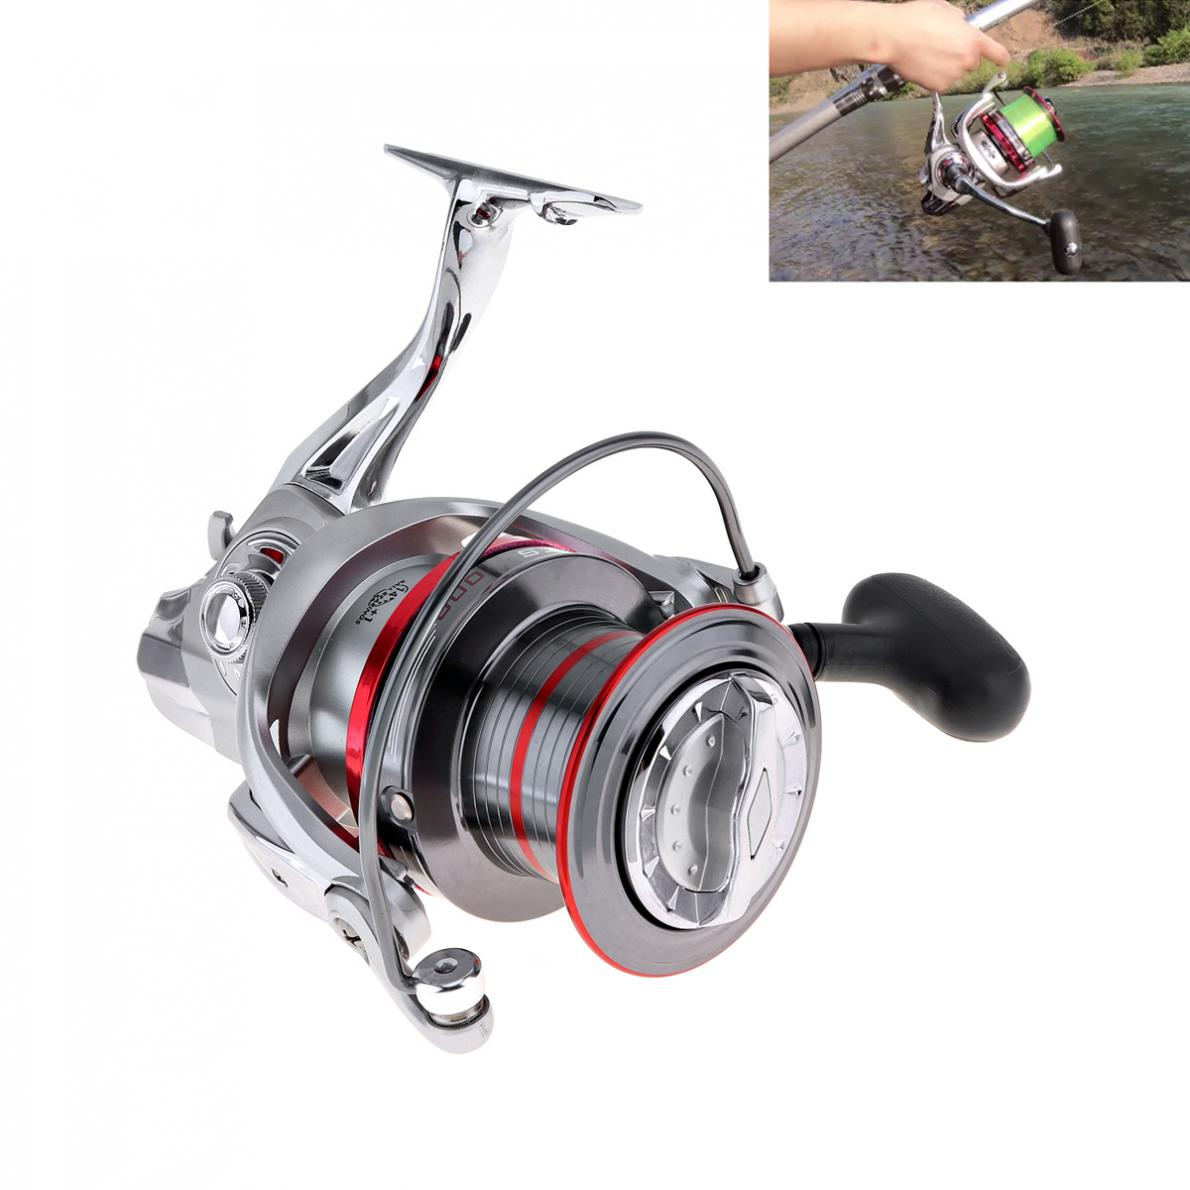 Full Metal Spinning Fishing Reels 10000 Series 14 1 Ball Bearing 25KG 55LB Long Distance Surfcasting Wheel with Larger Spool in Fishing Reels from Sports Entertainment